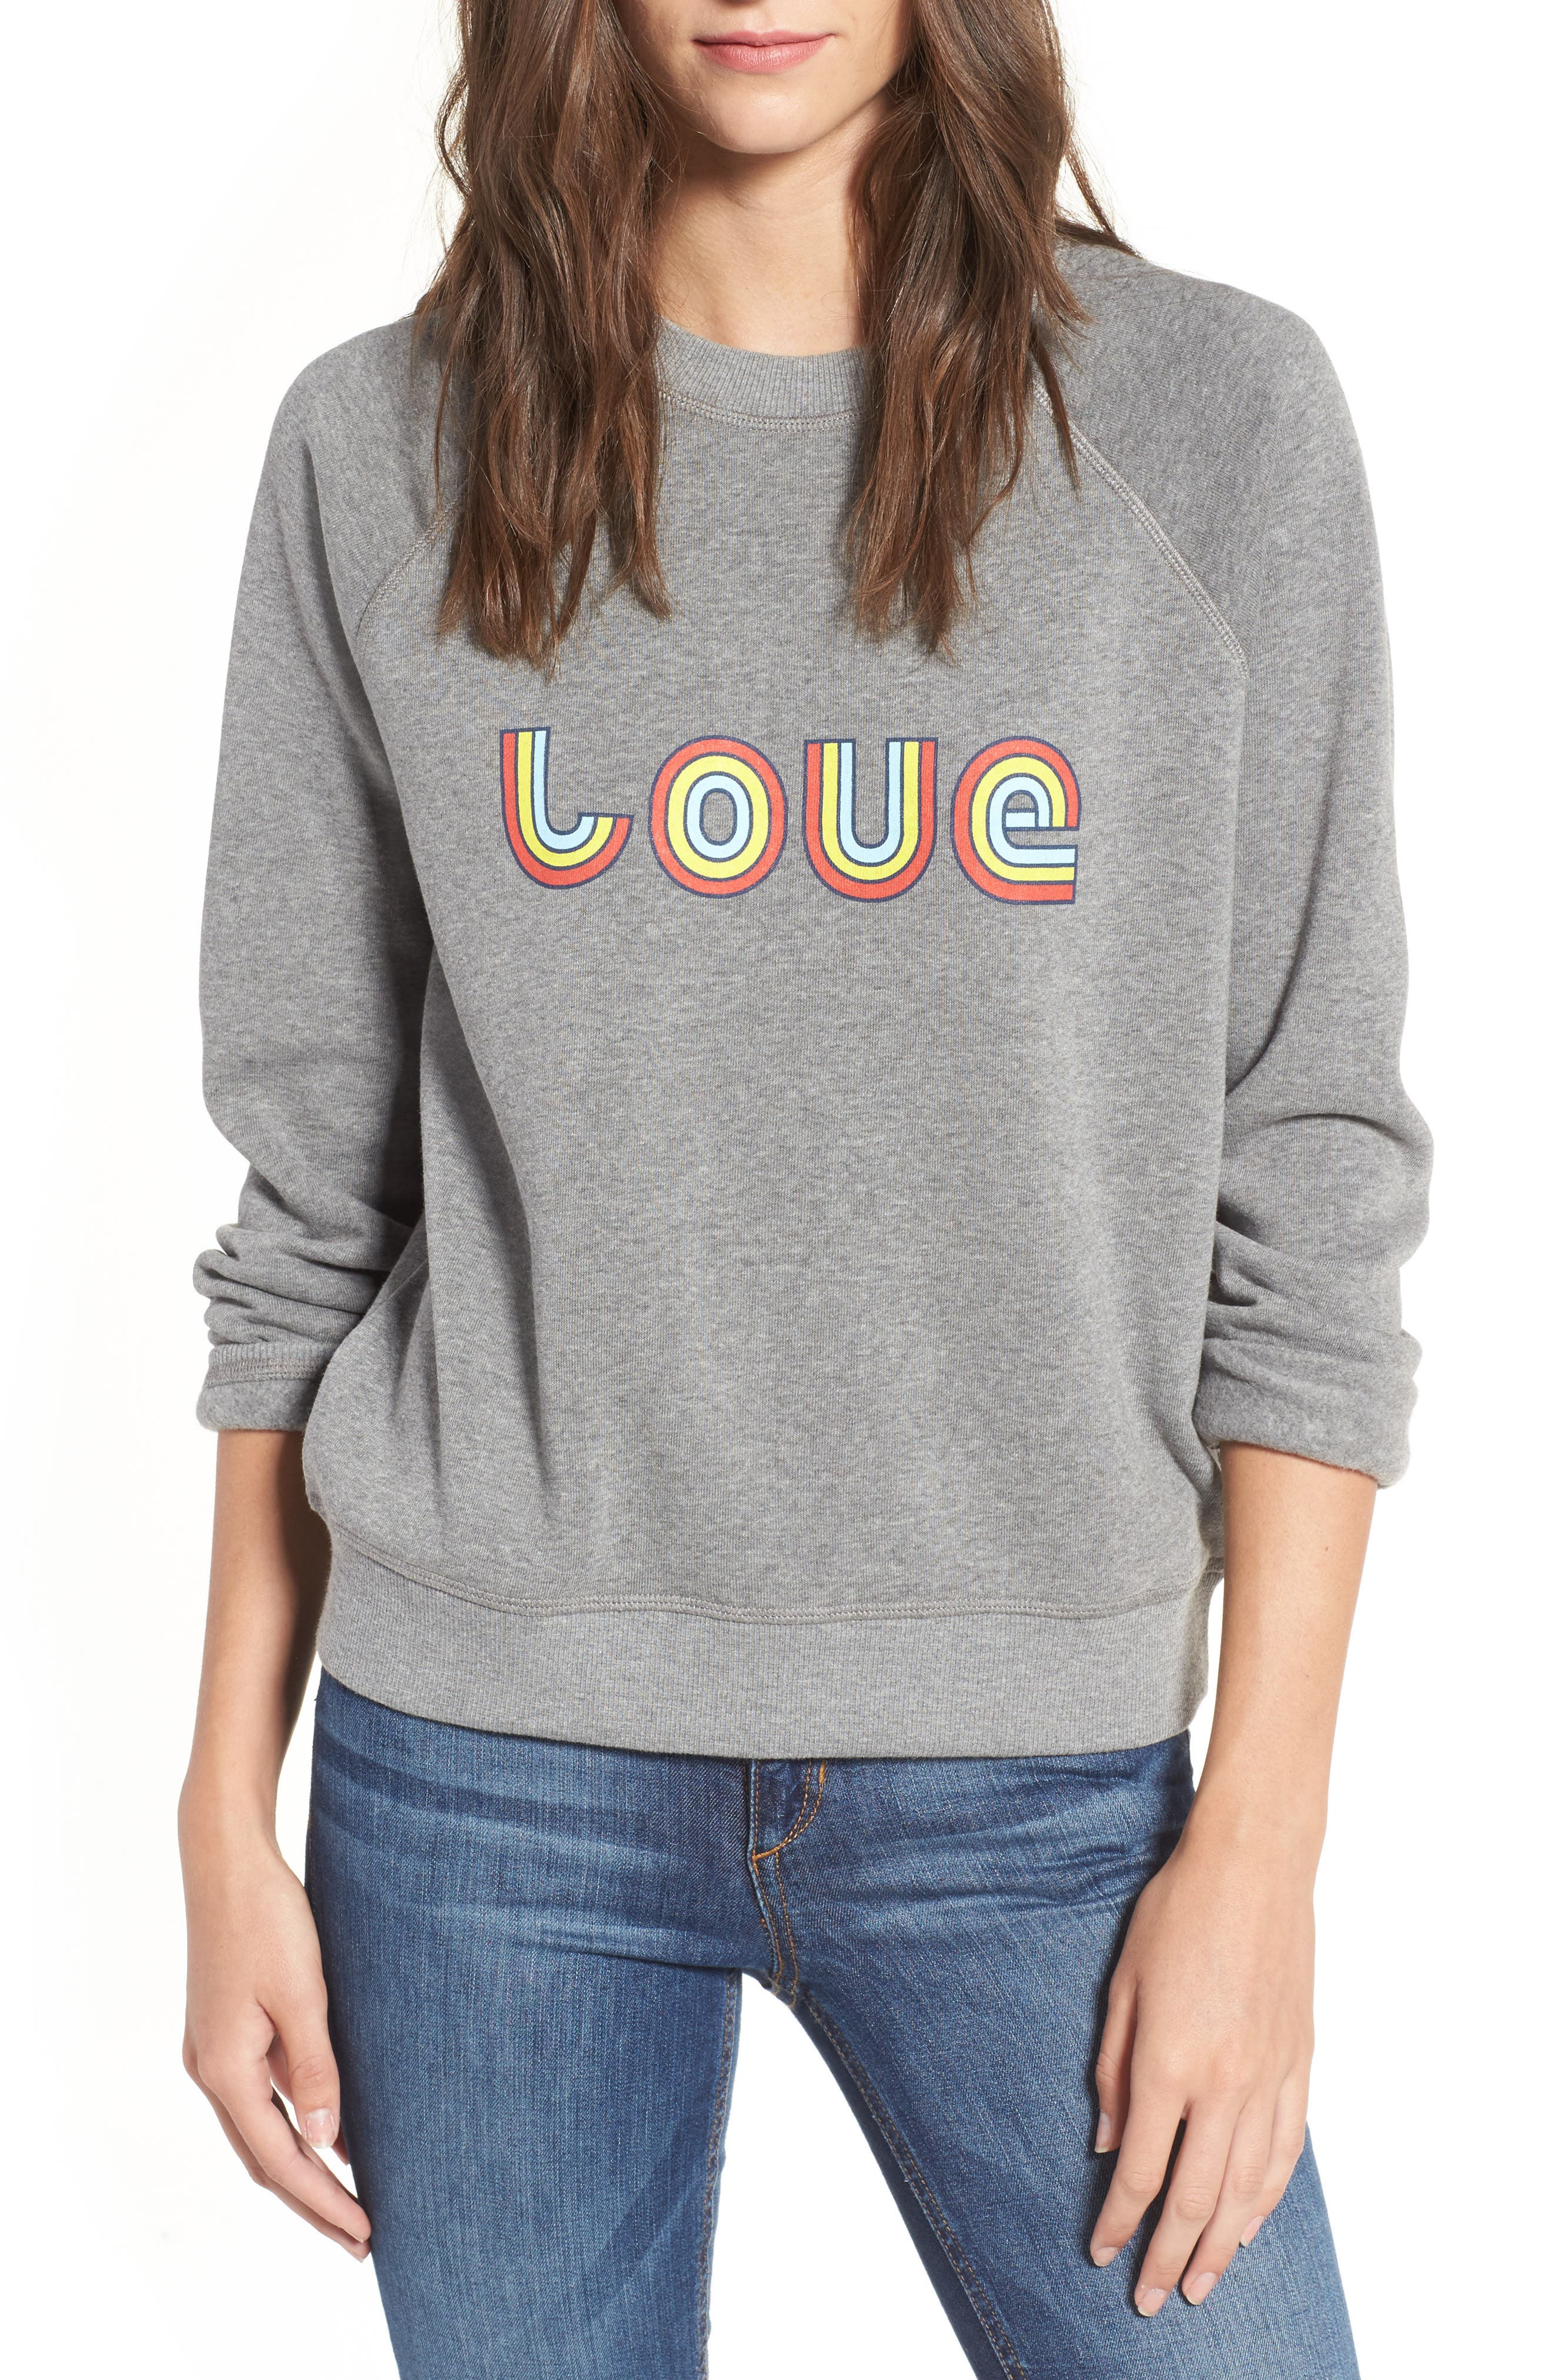 Love Sweatshirt,                         Main,                         color, 030